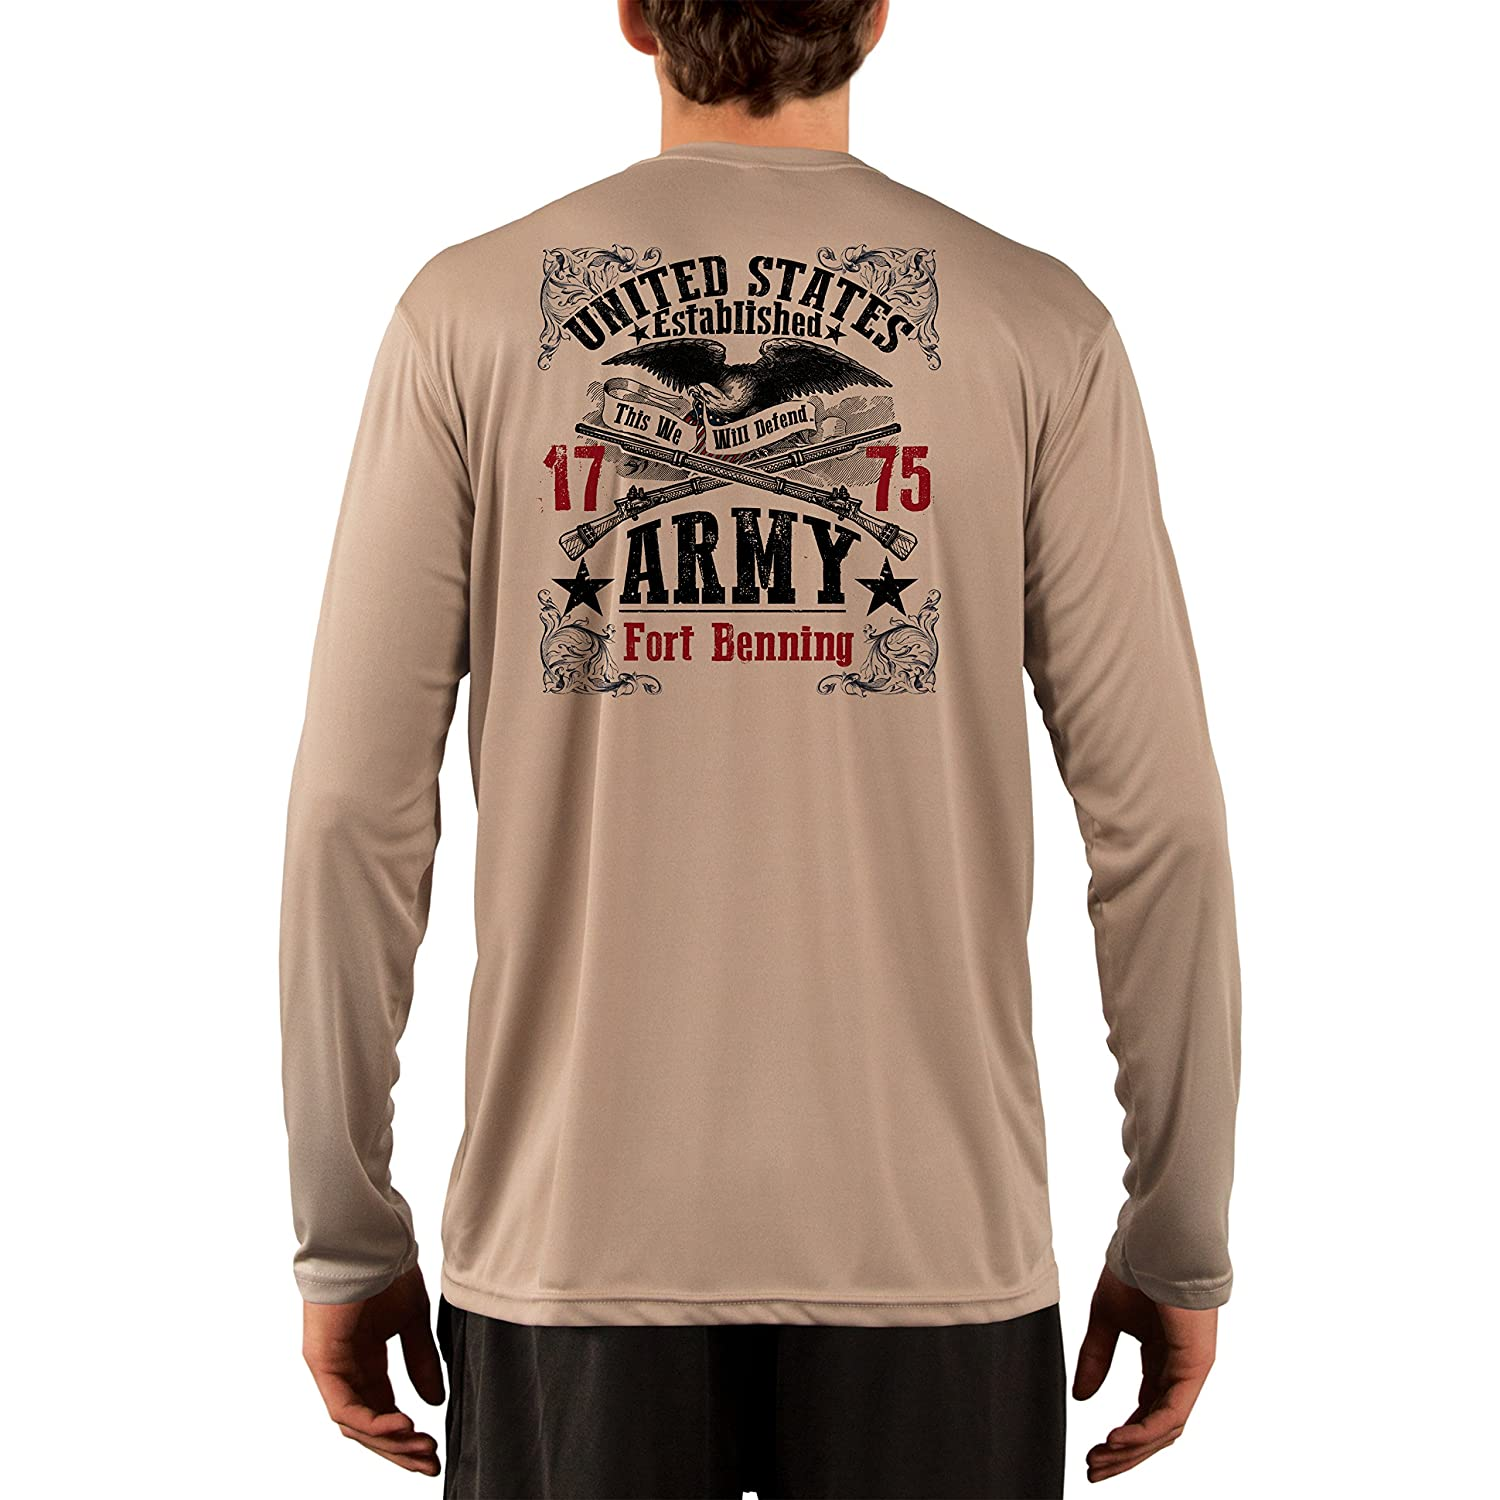 Long Sleeve T-Shirt Dead Or Alive Clothing U.S Army Fort Benning Mens UPF 50